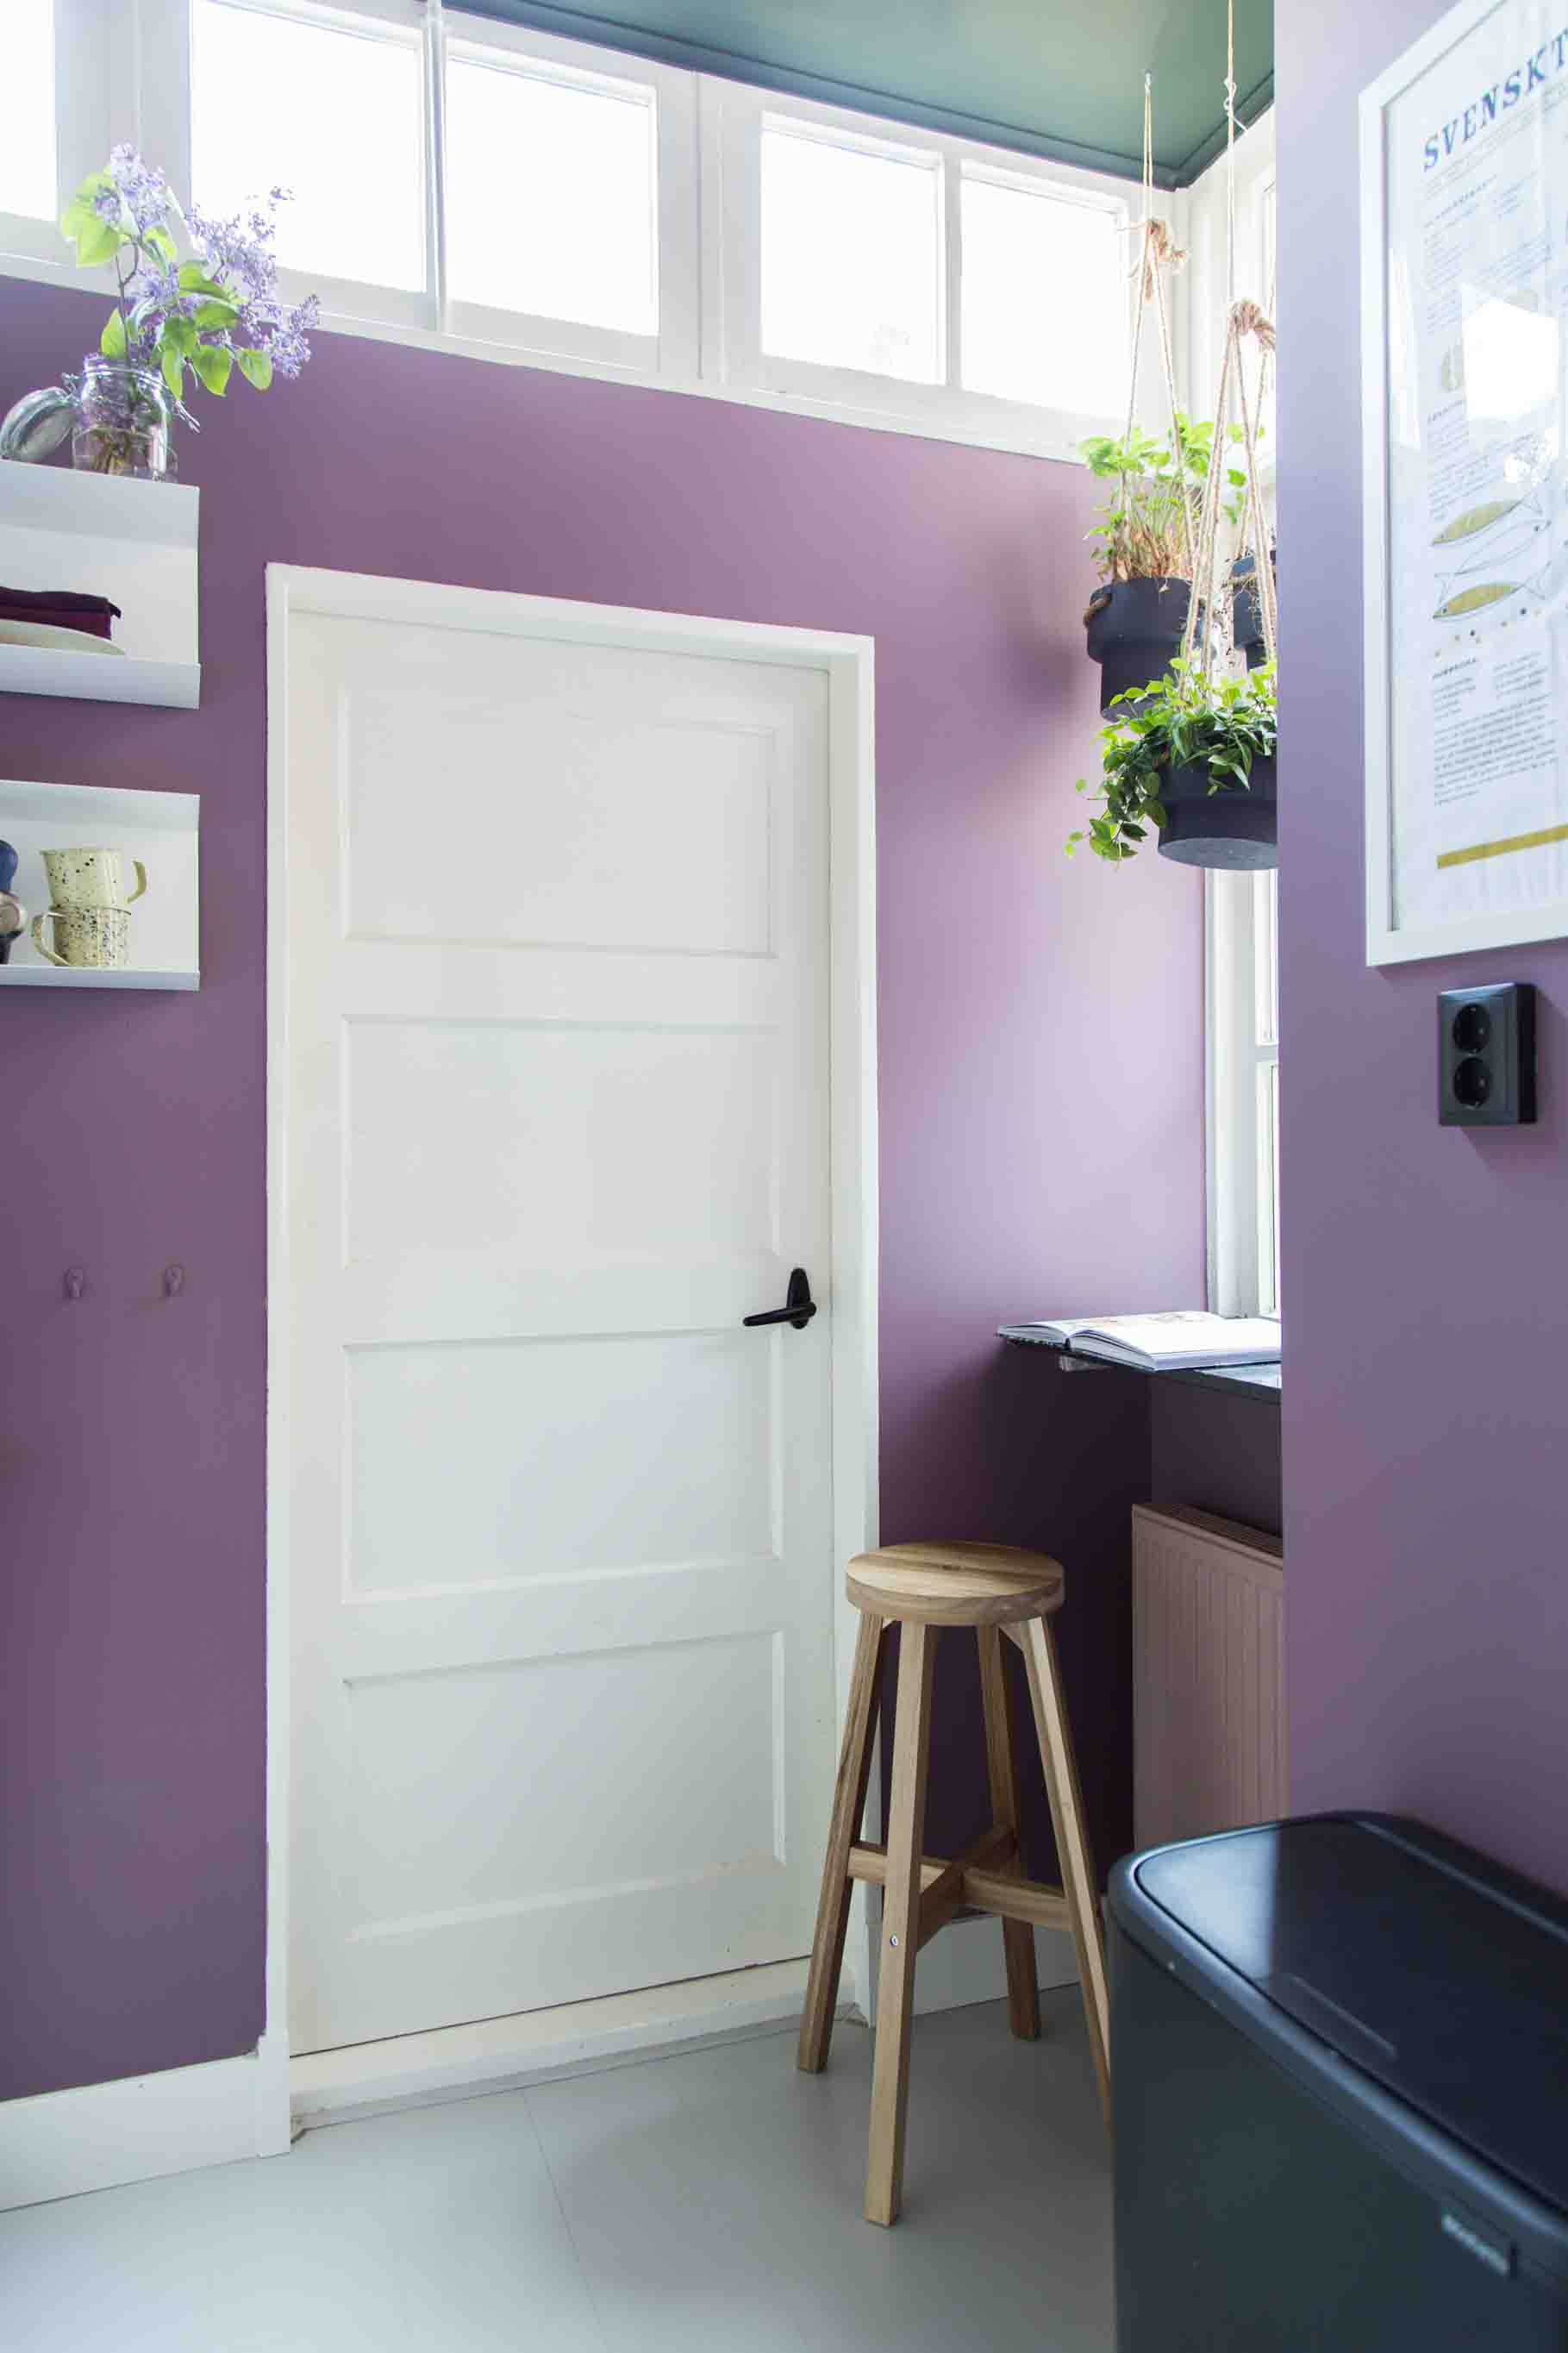 Combination of pinkish purple walls with a dark green ceiling and white doors